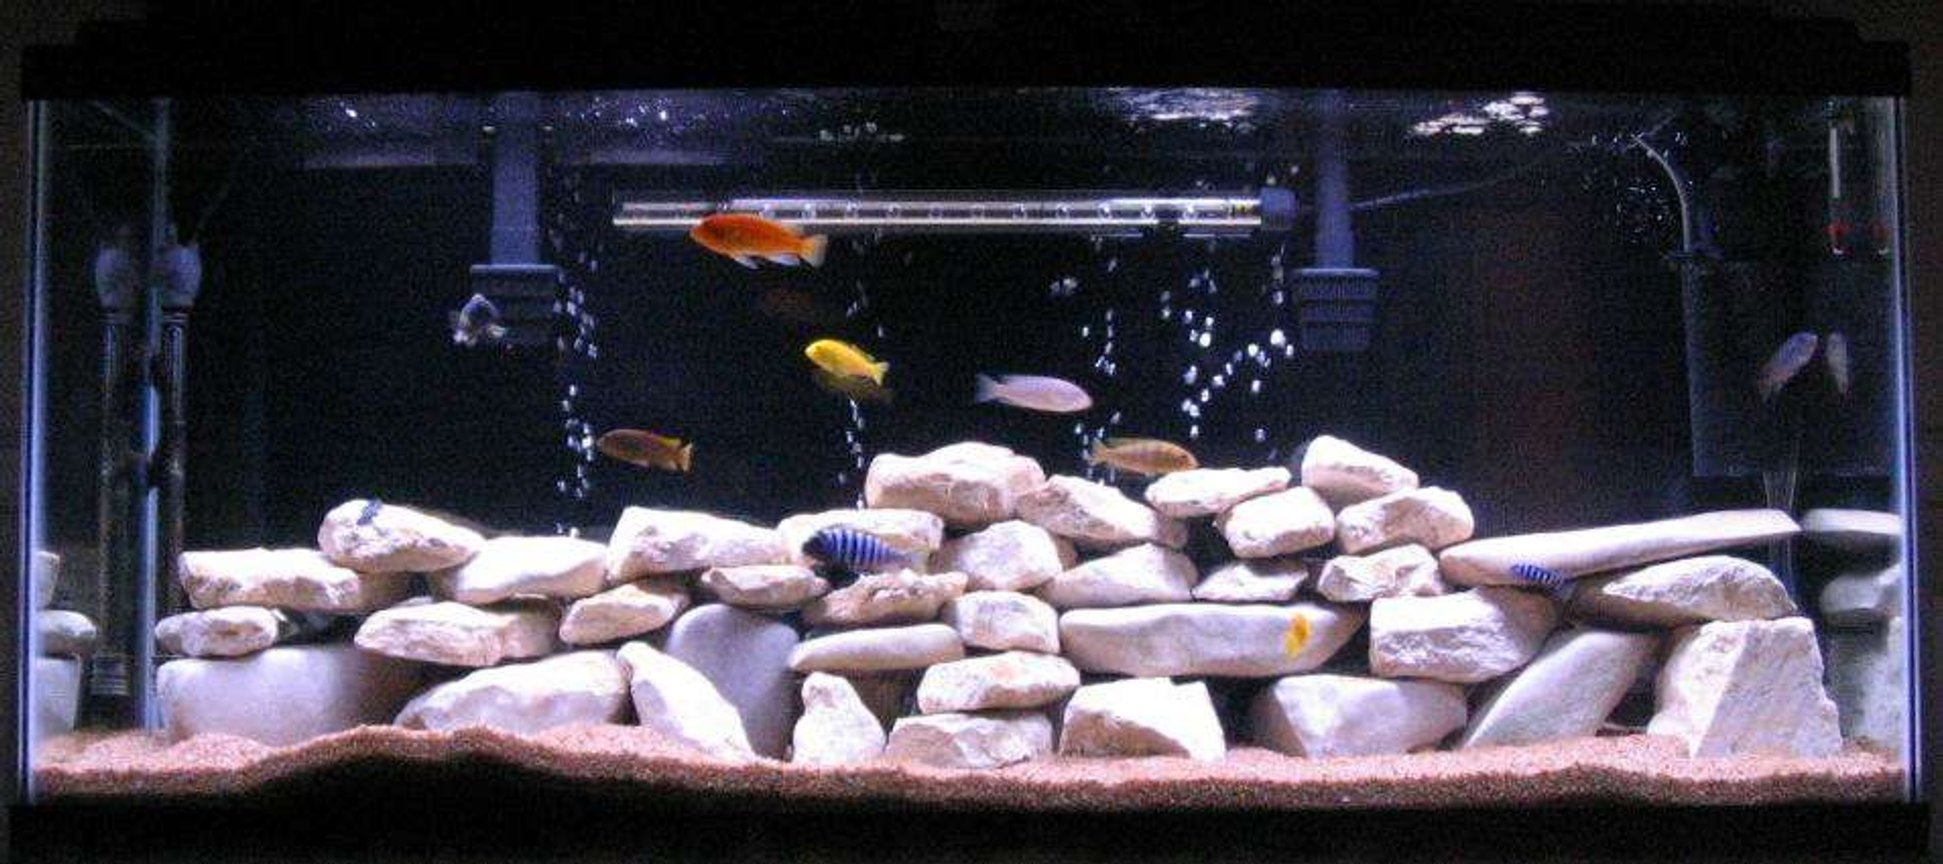 55 gallons freshwater fish tank (mostly fish and non-living decorations) - 55 gallon tank with 12 African cichlids and 1 African catfish